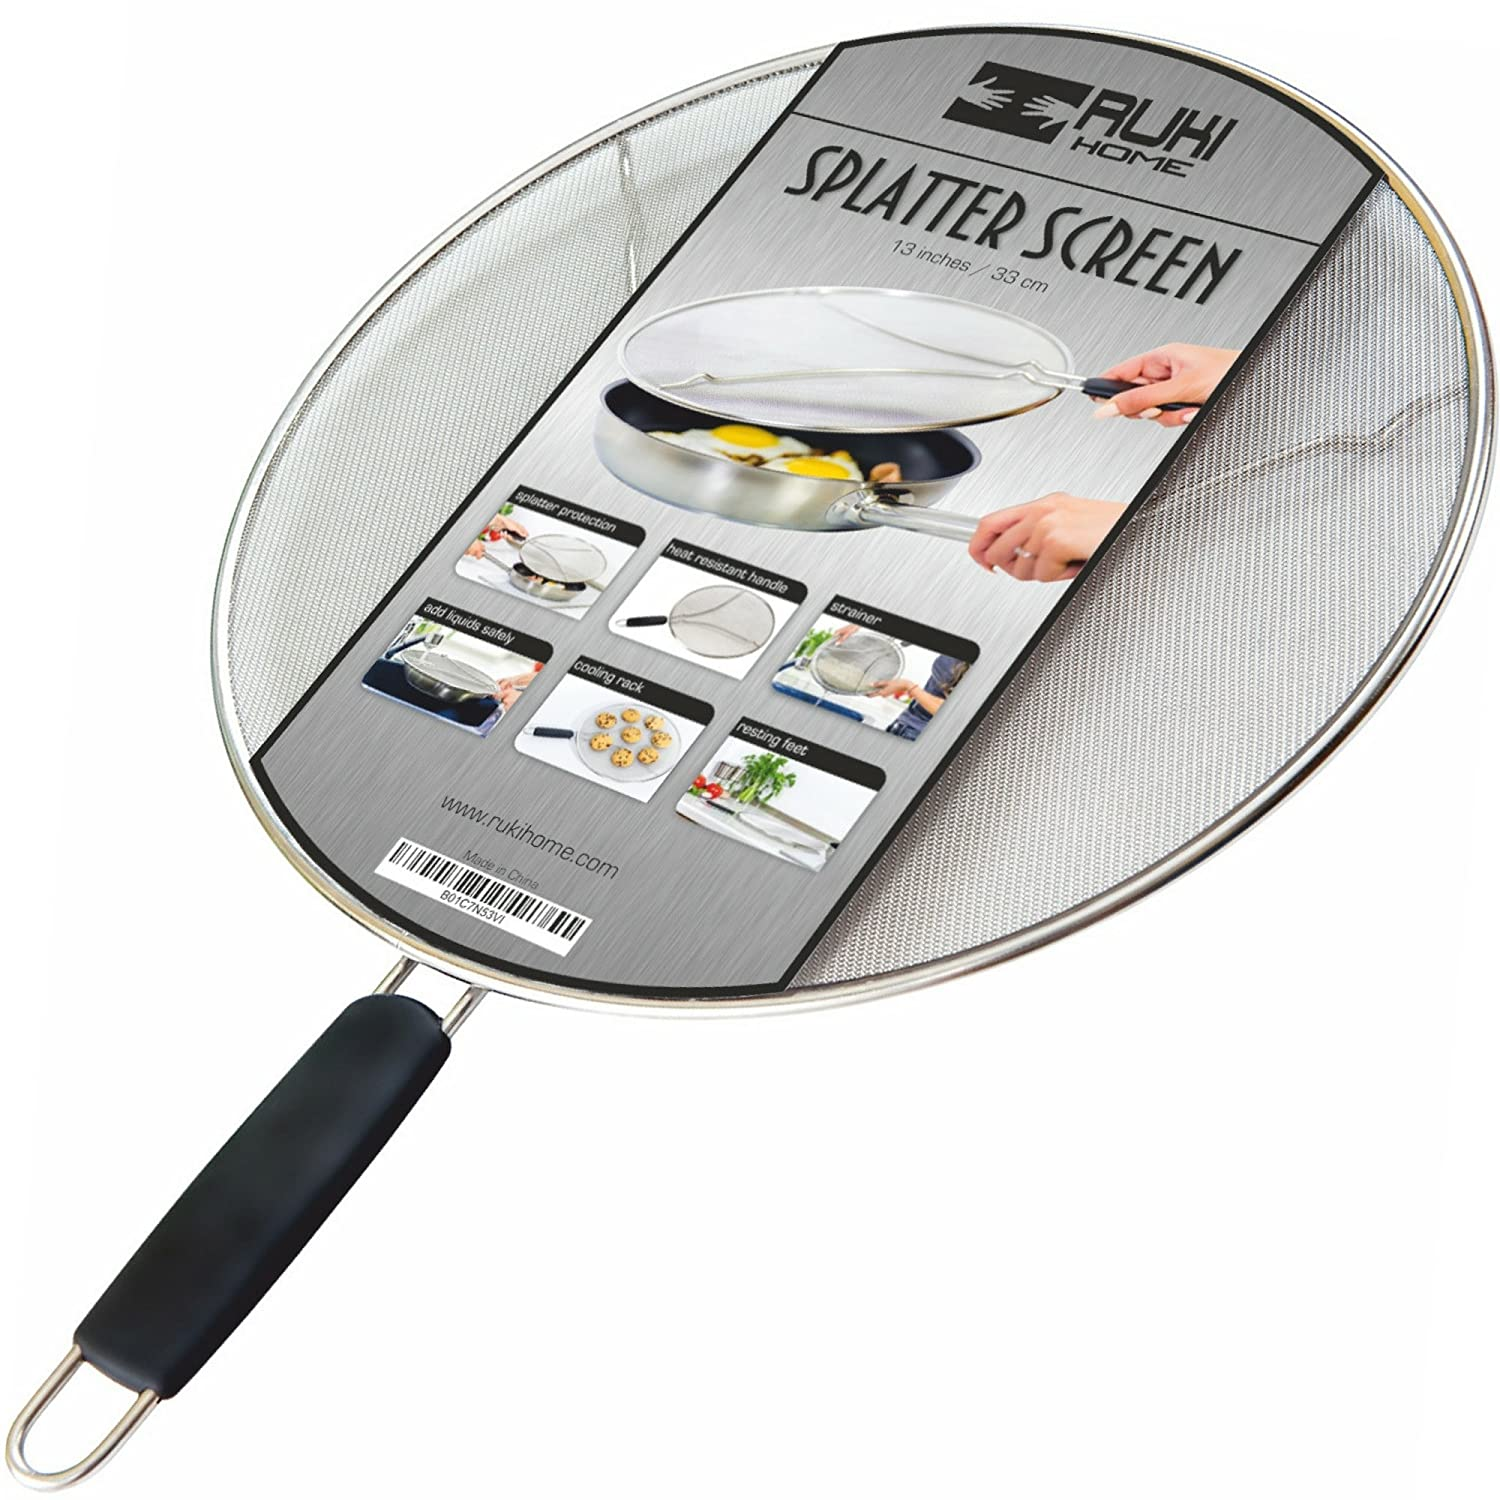 """Splatter Screen for Frying Pan - 13"""" Stainless Steel Splash Guard for Cooking - Extra Fine Mesh with Resting Feet and Heat Resistant Handlе - Pasta Strainer - Cookie Cooling Rack - Dishwasher Safe"""